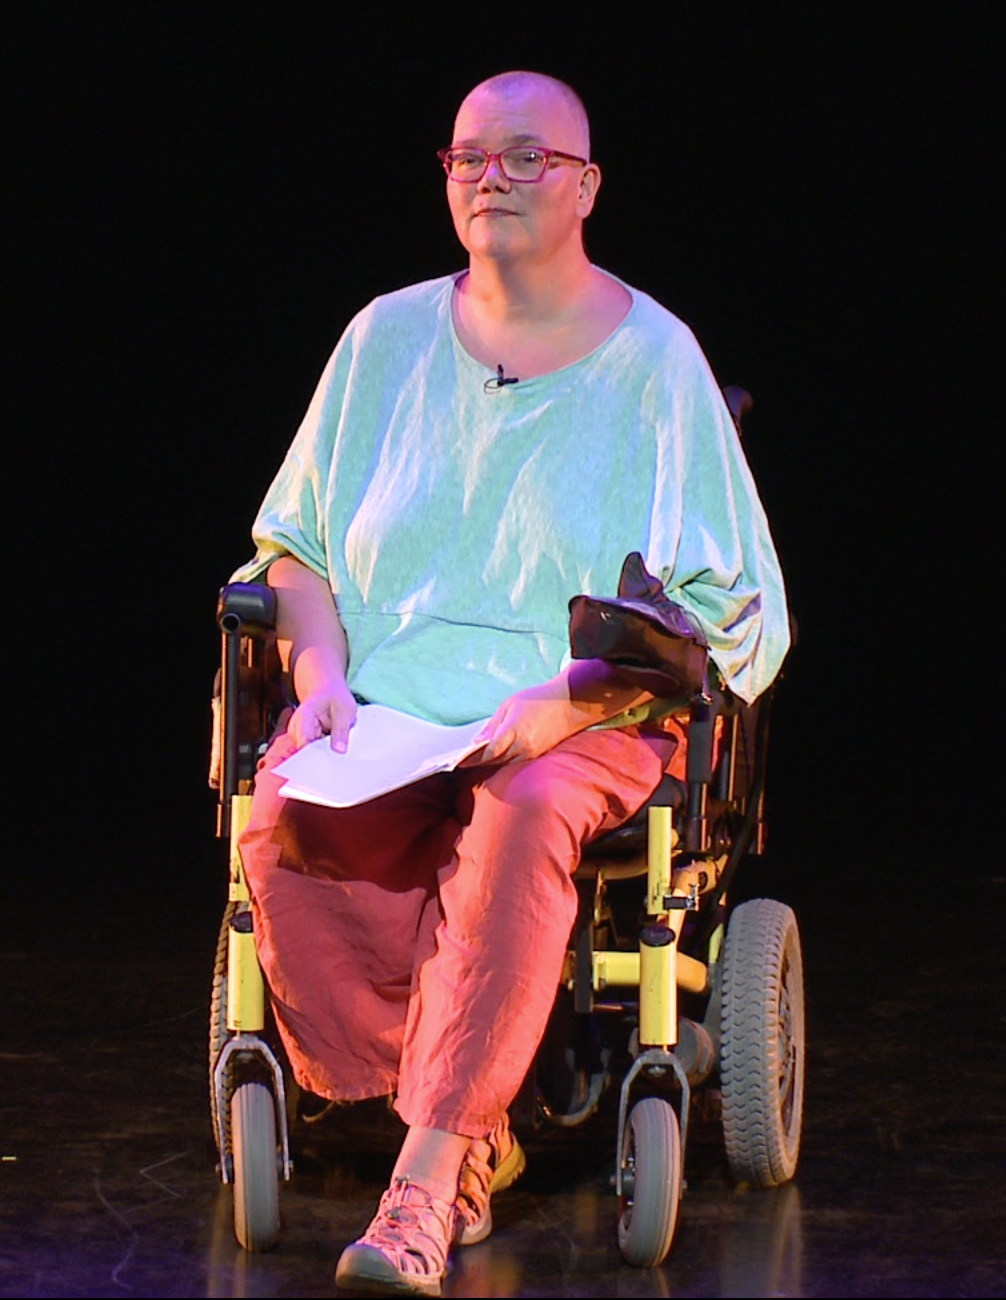 A large white woman in a wheelchair in a dark theatre, short-shorn grey hair, glasses, primary color clothes, with a poetry manuscript in her hand, looking at the camera.